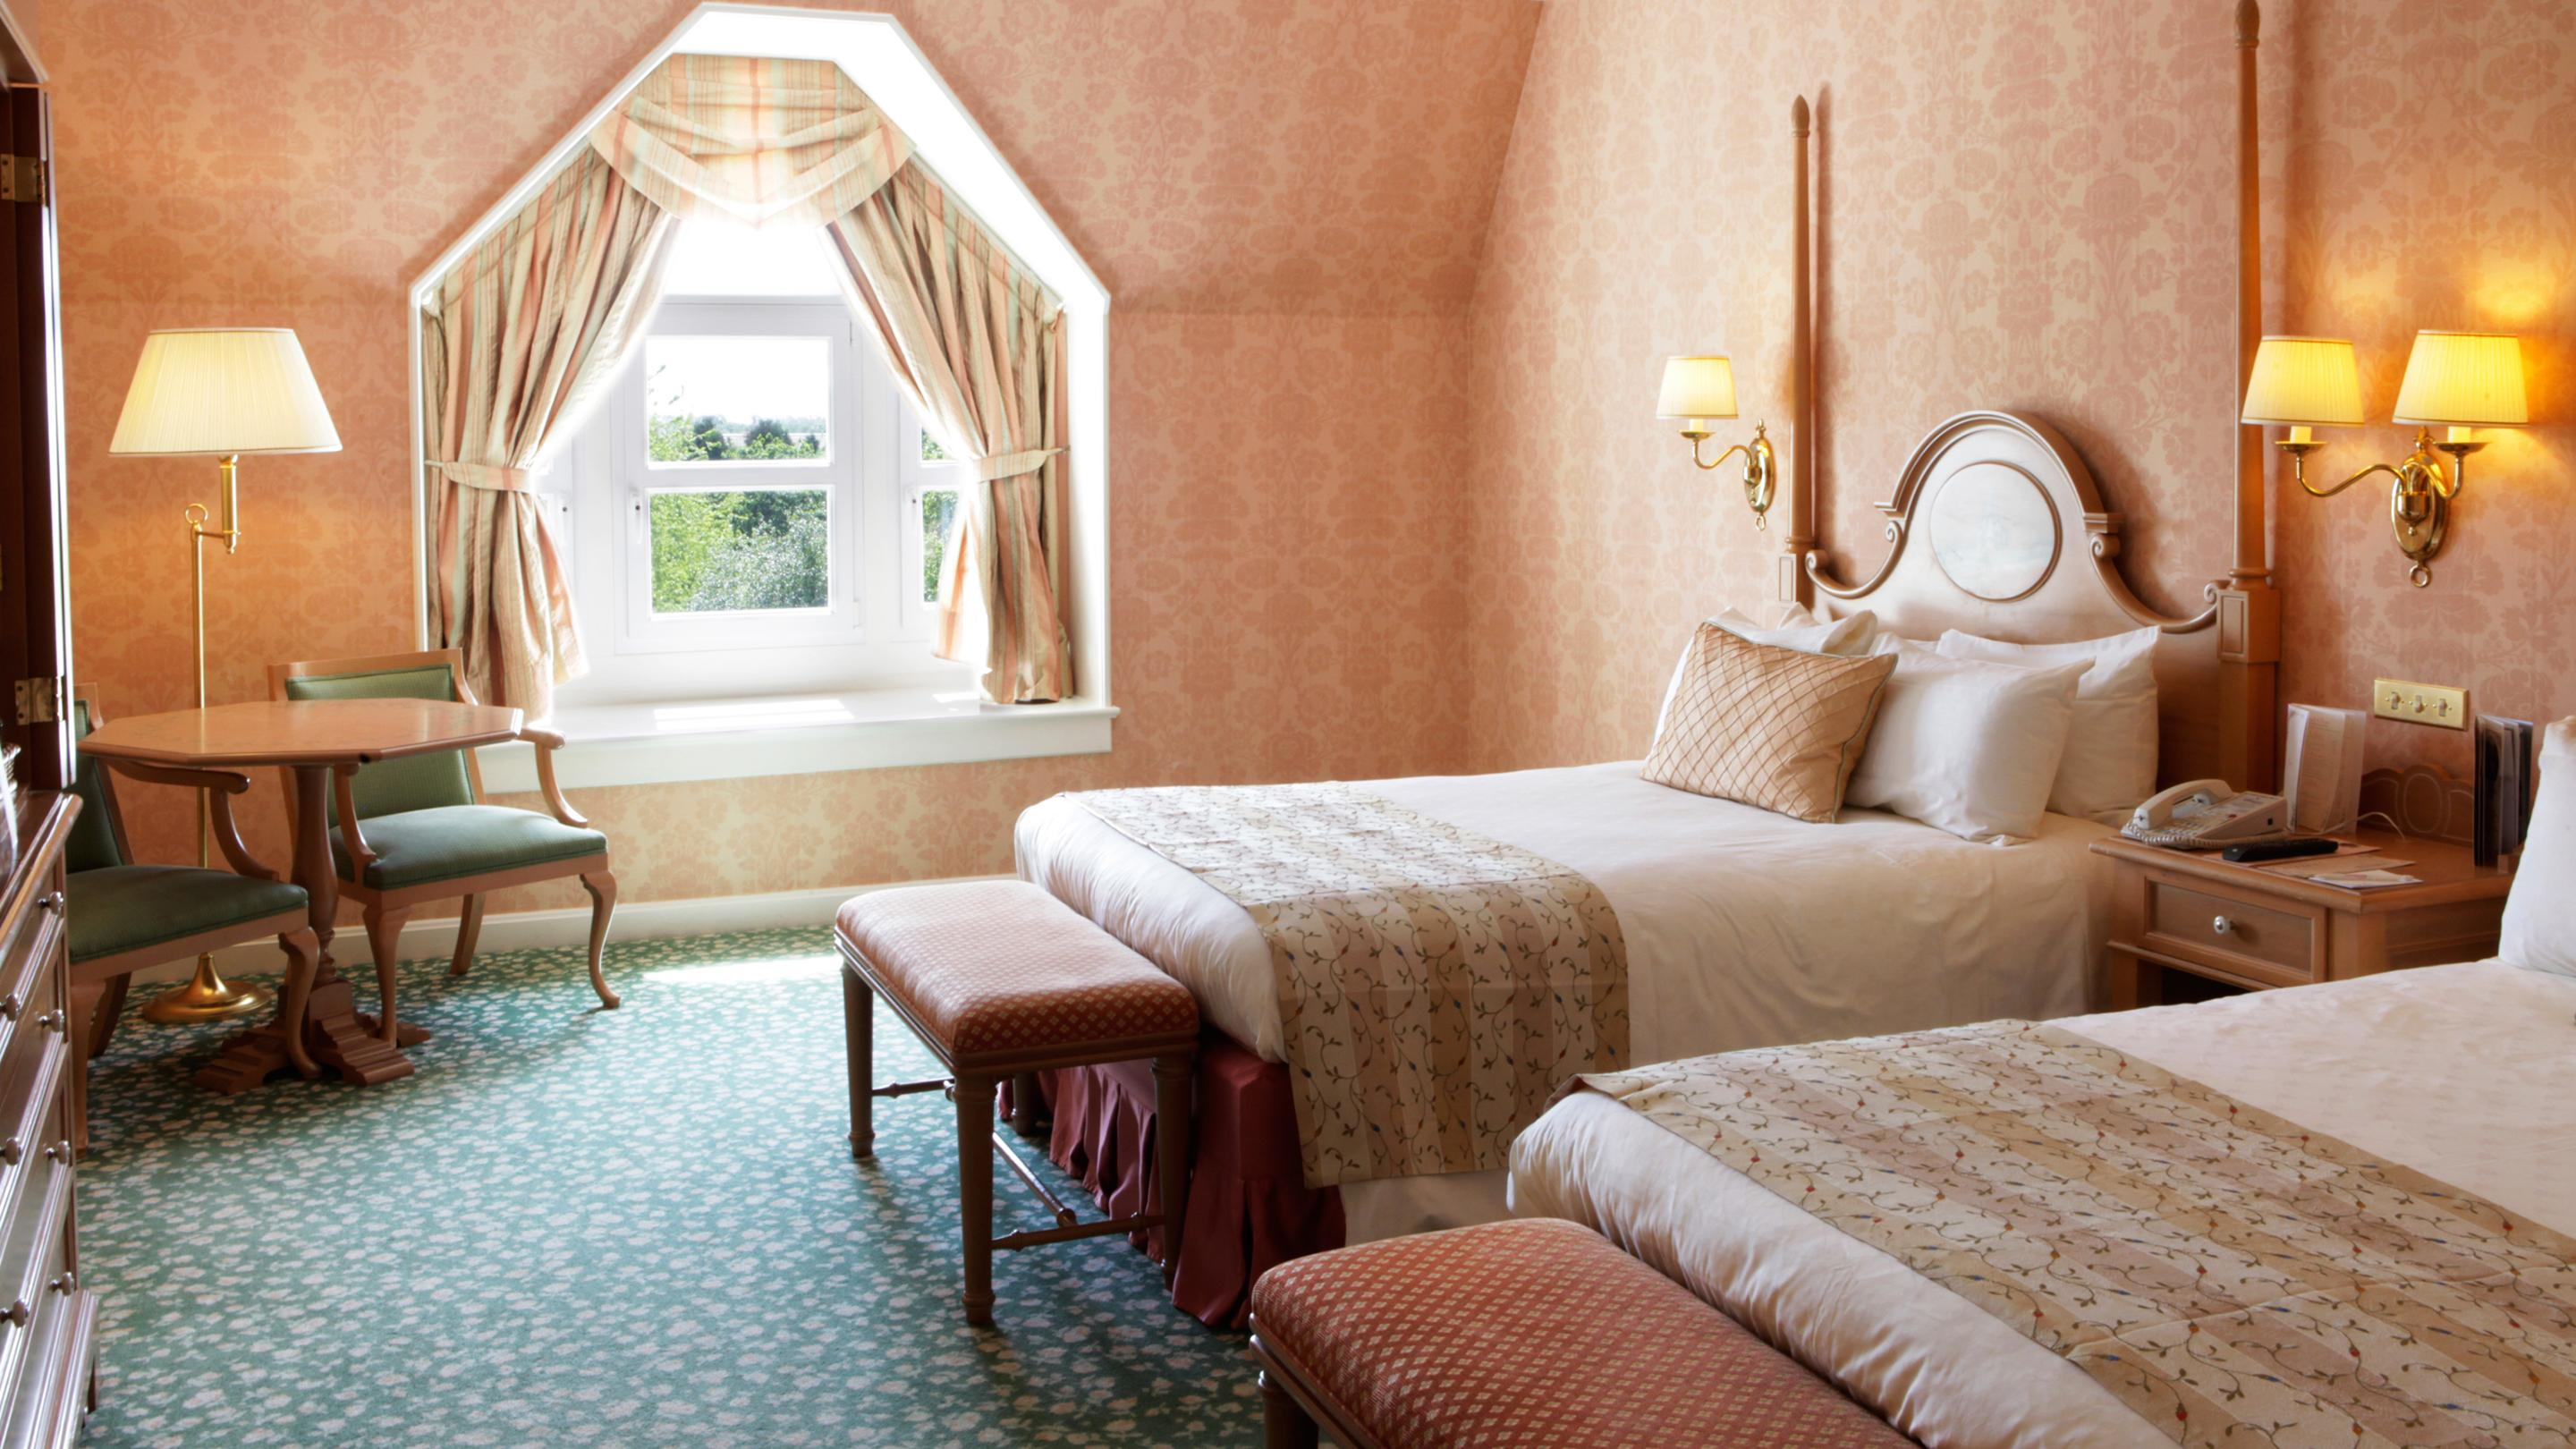 Disneyland Paris Hotel Camere : Disneyland hotel room rates disneyland paris